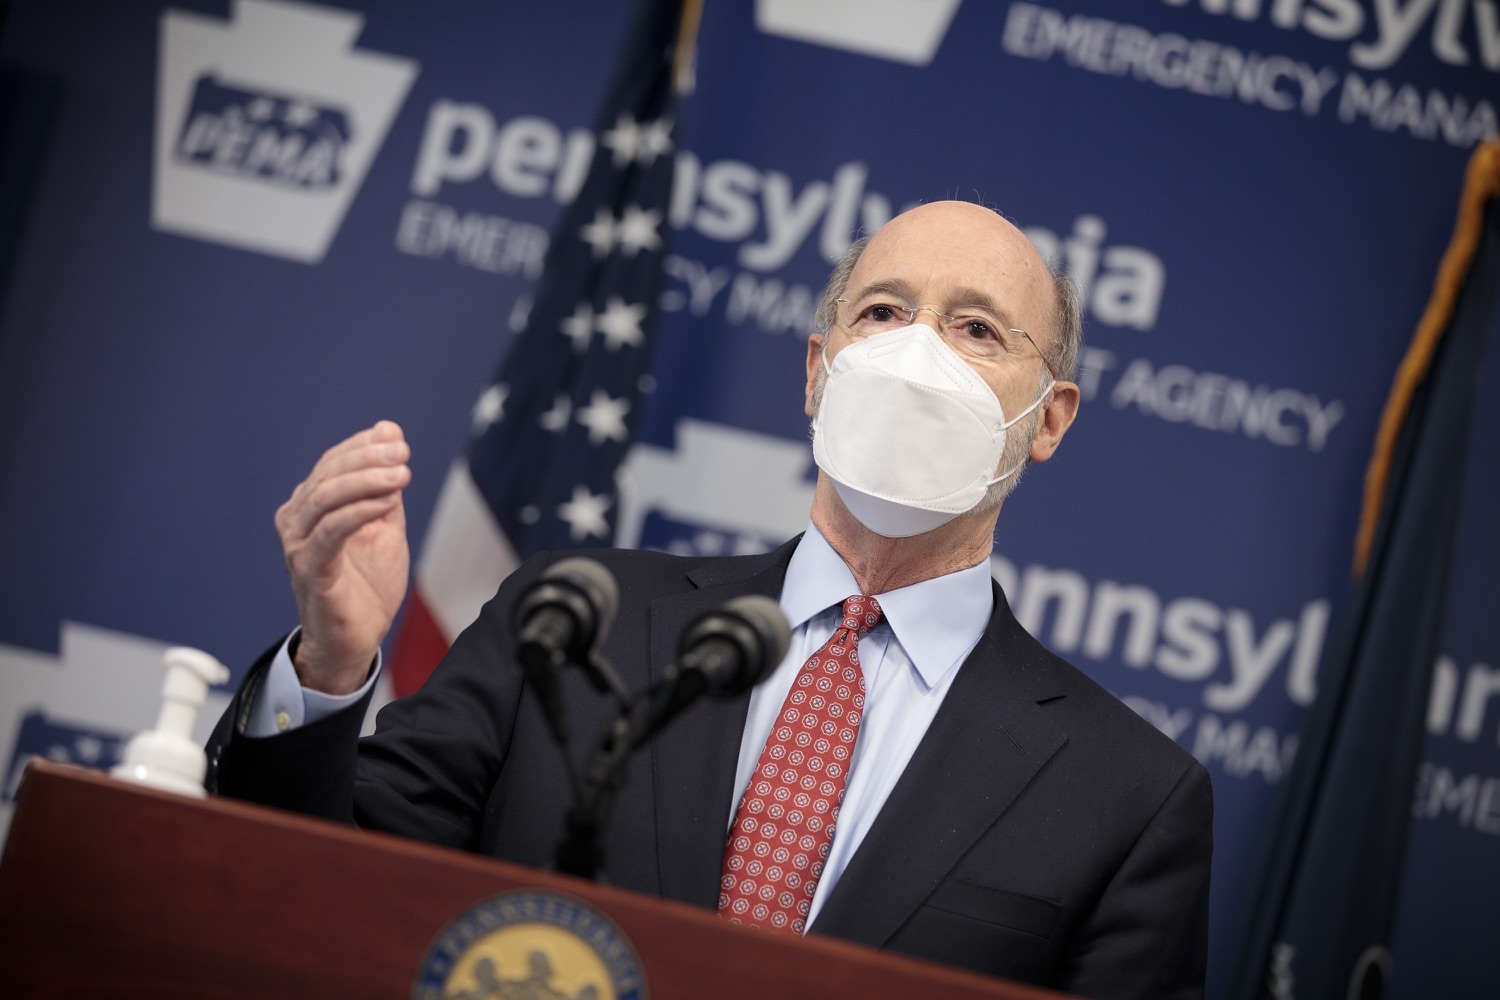 "<a href=""https://filesource.wostreaming.net/commonwealthofpa/photo/18512_gov_education_dz_11.jpg"" target=""_blank"">⇣ Download Photo<br></a>Pennsylvania Governor Tom Wolf answers questions from the press.  Continuing to make the future of Pennsylvanias students a priority, Governor Tom Wolfs 2021 agenda makes a historic $1.3 billion investment in public schools and creates fairness in education funding, while cutting taxes for working families and businesses. Harrisburg, PA  February 4, 2021"